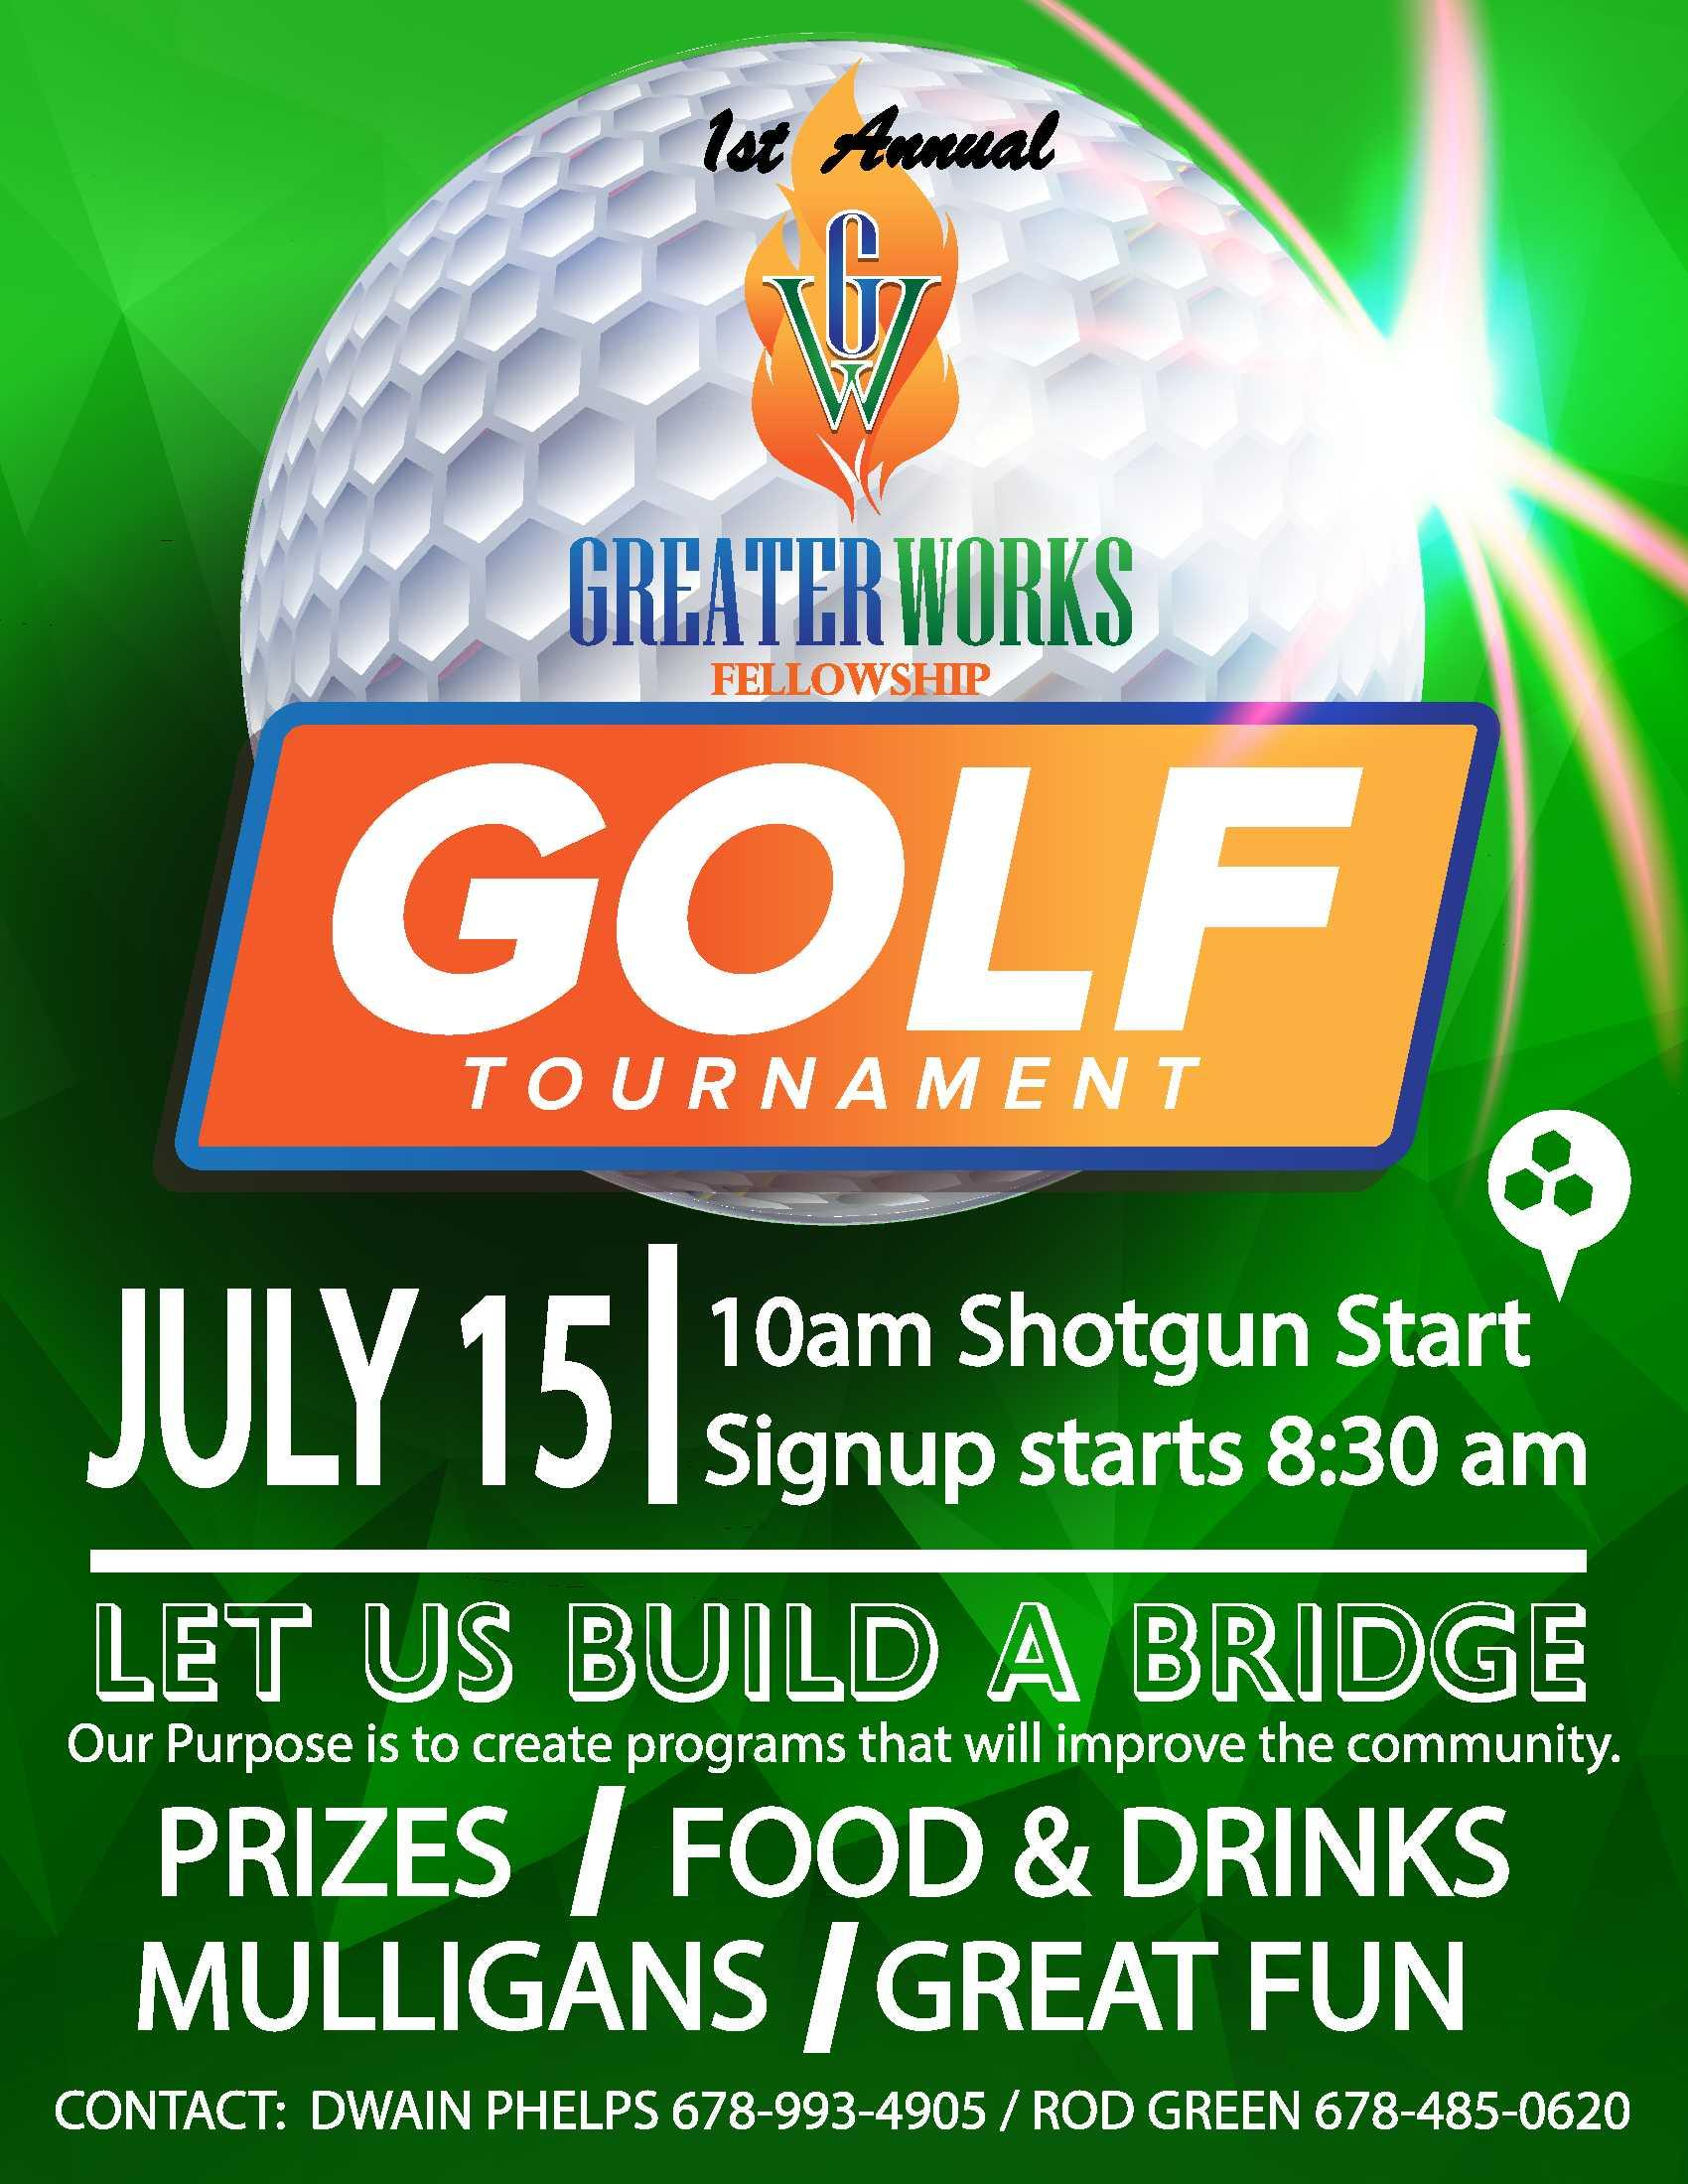 Greater Works Fellowship Annual Golf Tournament